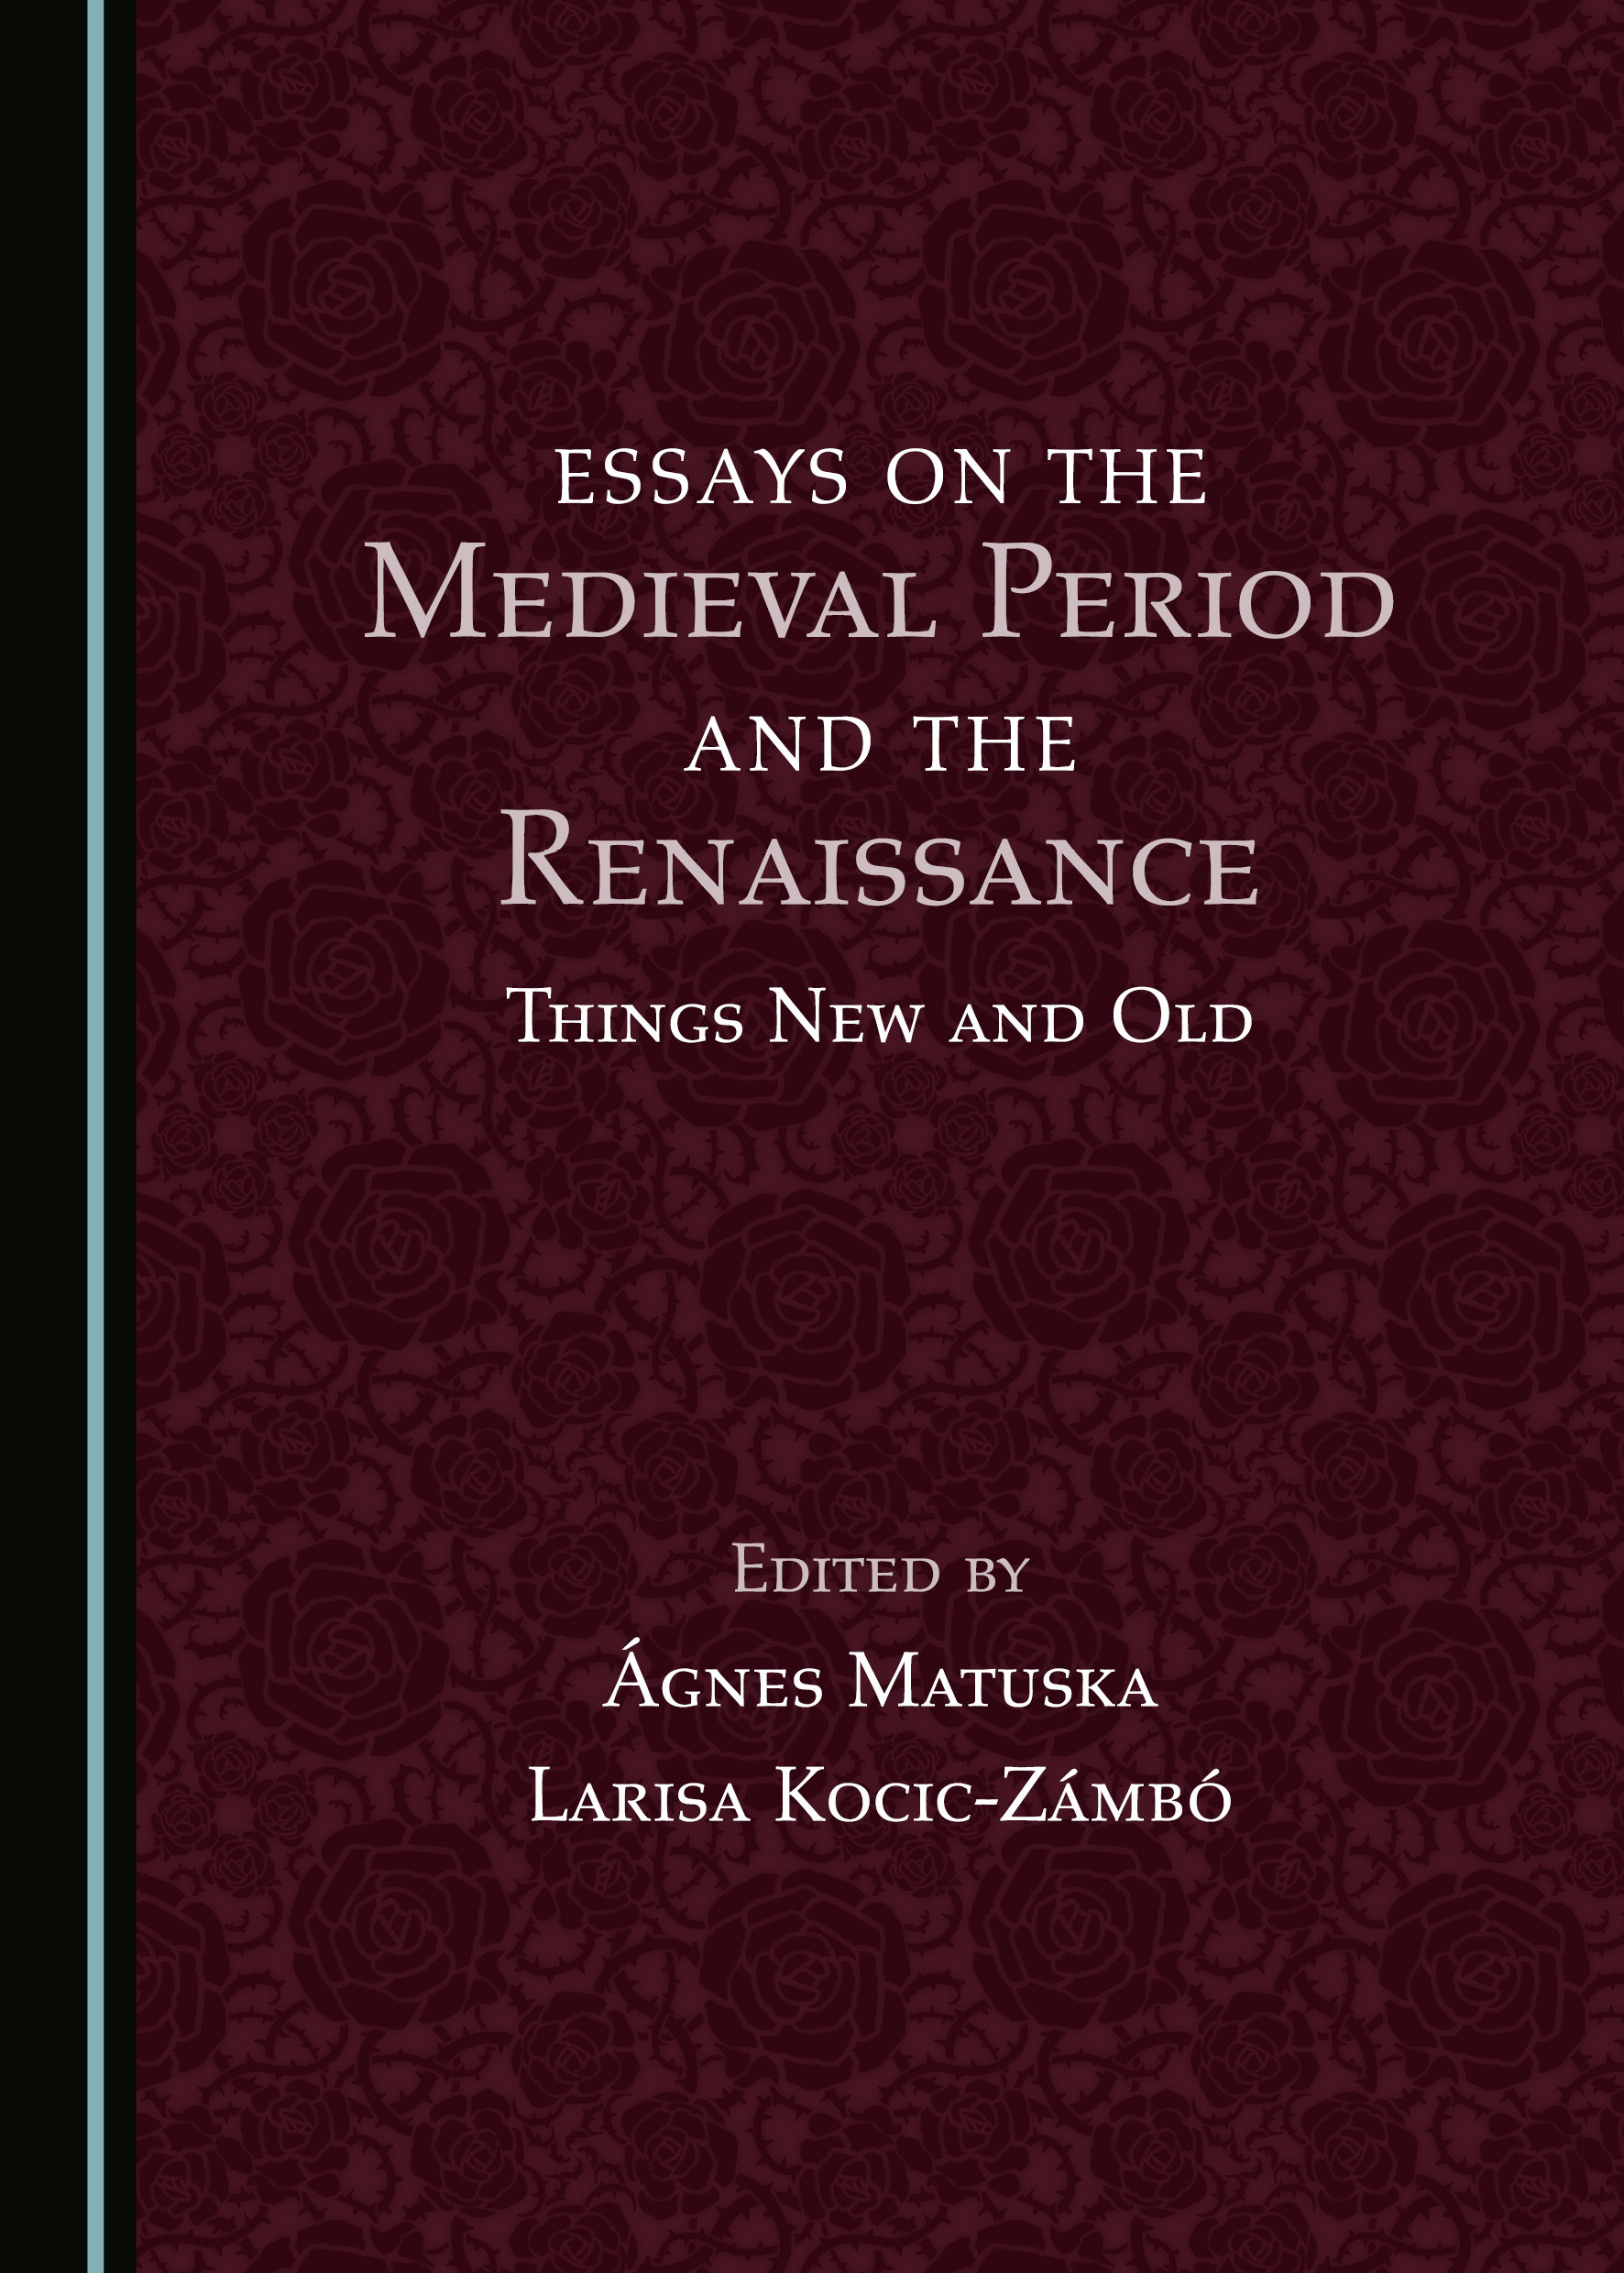 Essays on the Medieval Period and the Renaissance: Things New and Old